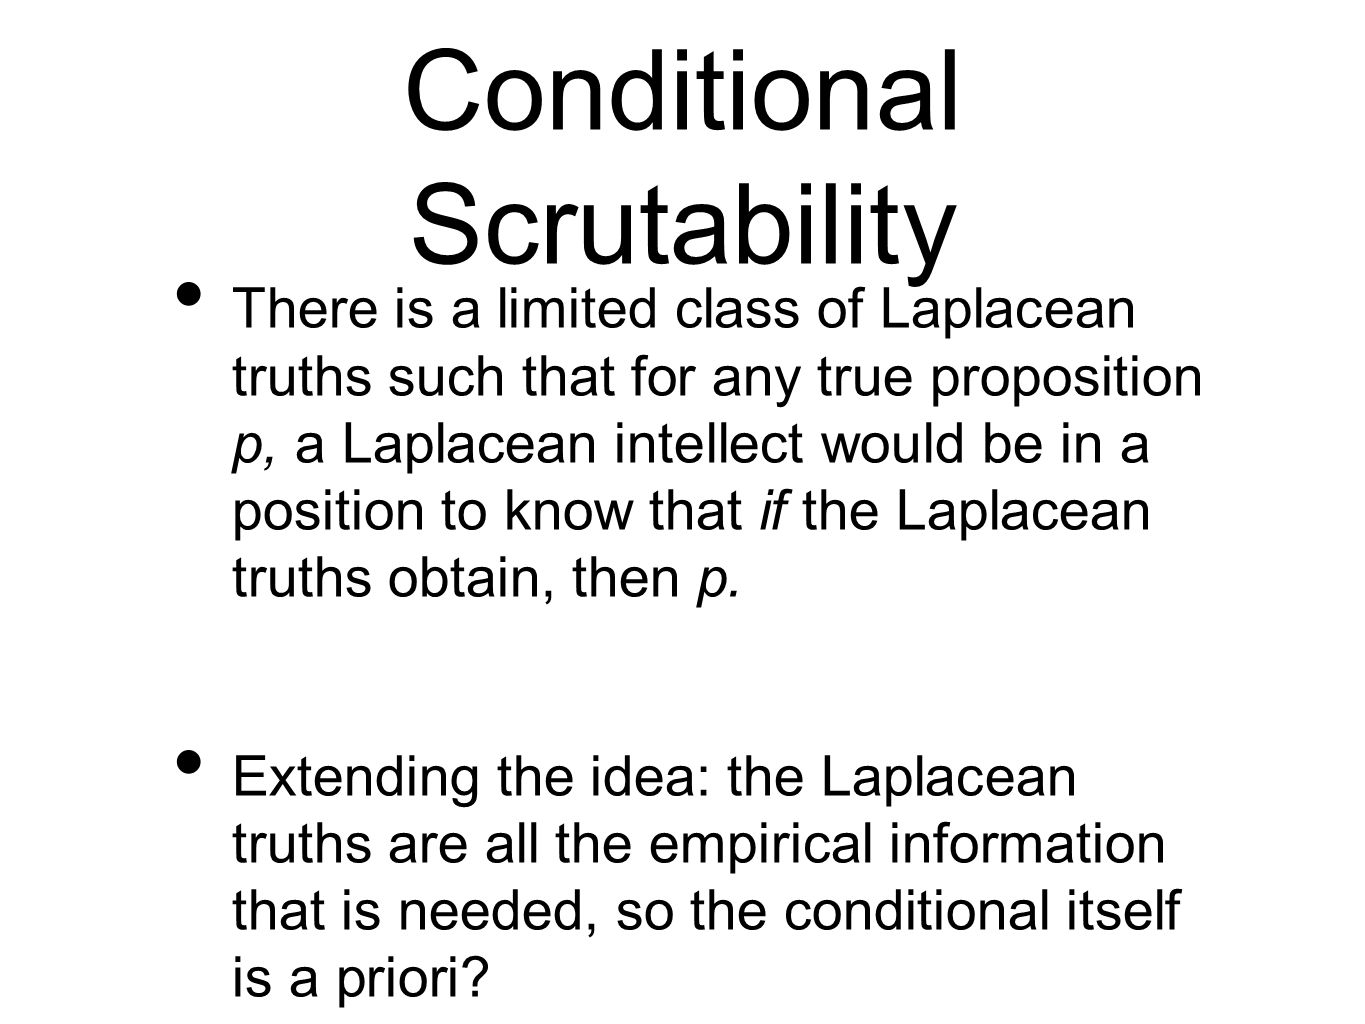 Conditional Scrutability There is a limited class of Laplacean truths such that for any true proposition p, a Laplacean intellect would be in a positi